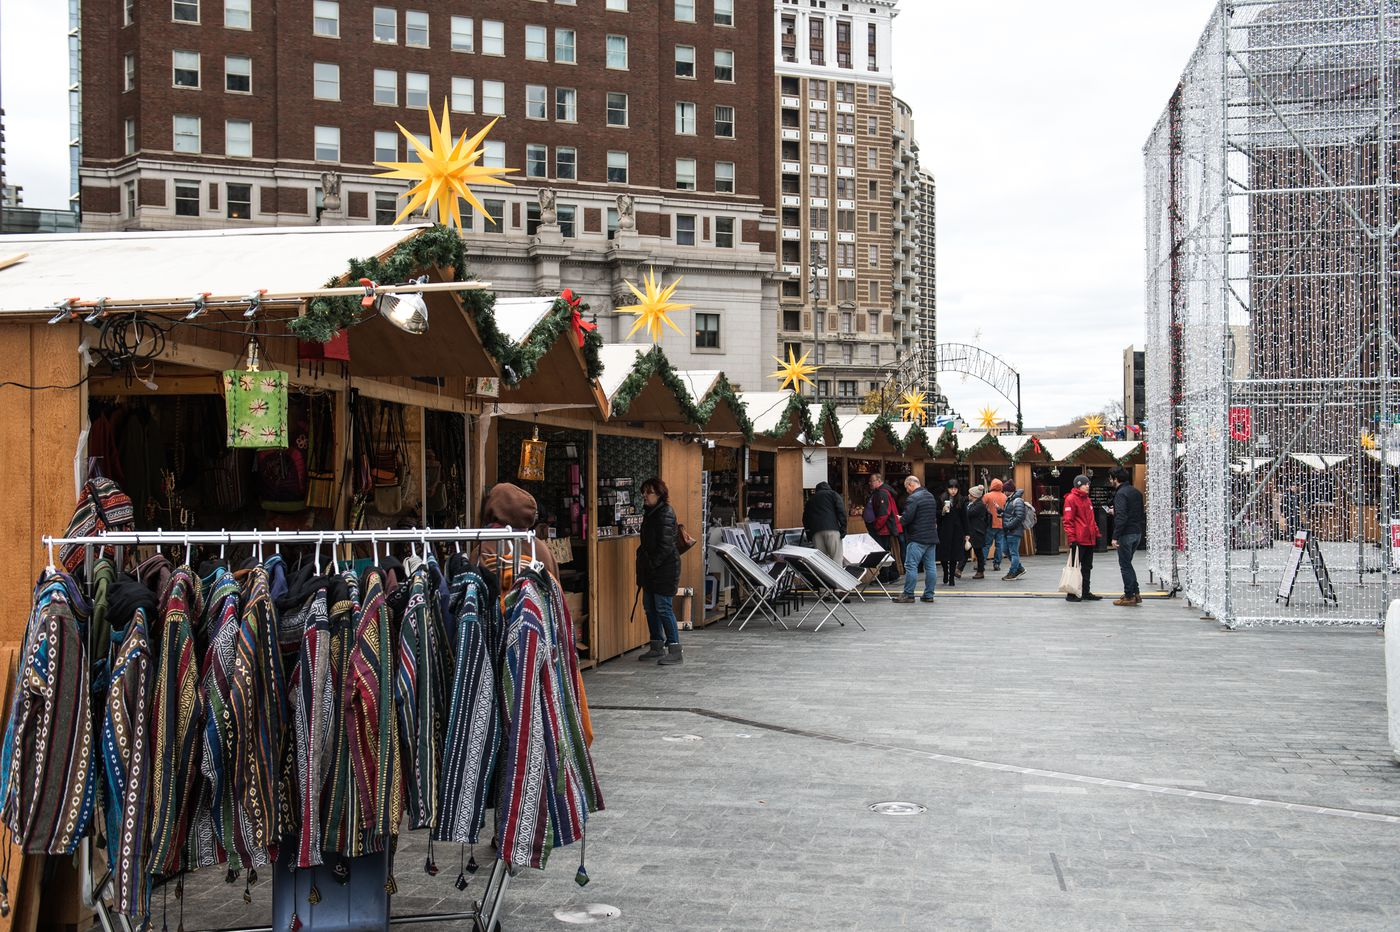 Christmas Village Love Park.10 Vendors Not To Miss At Christmas Village In Love Park